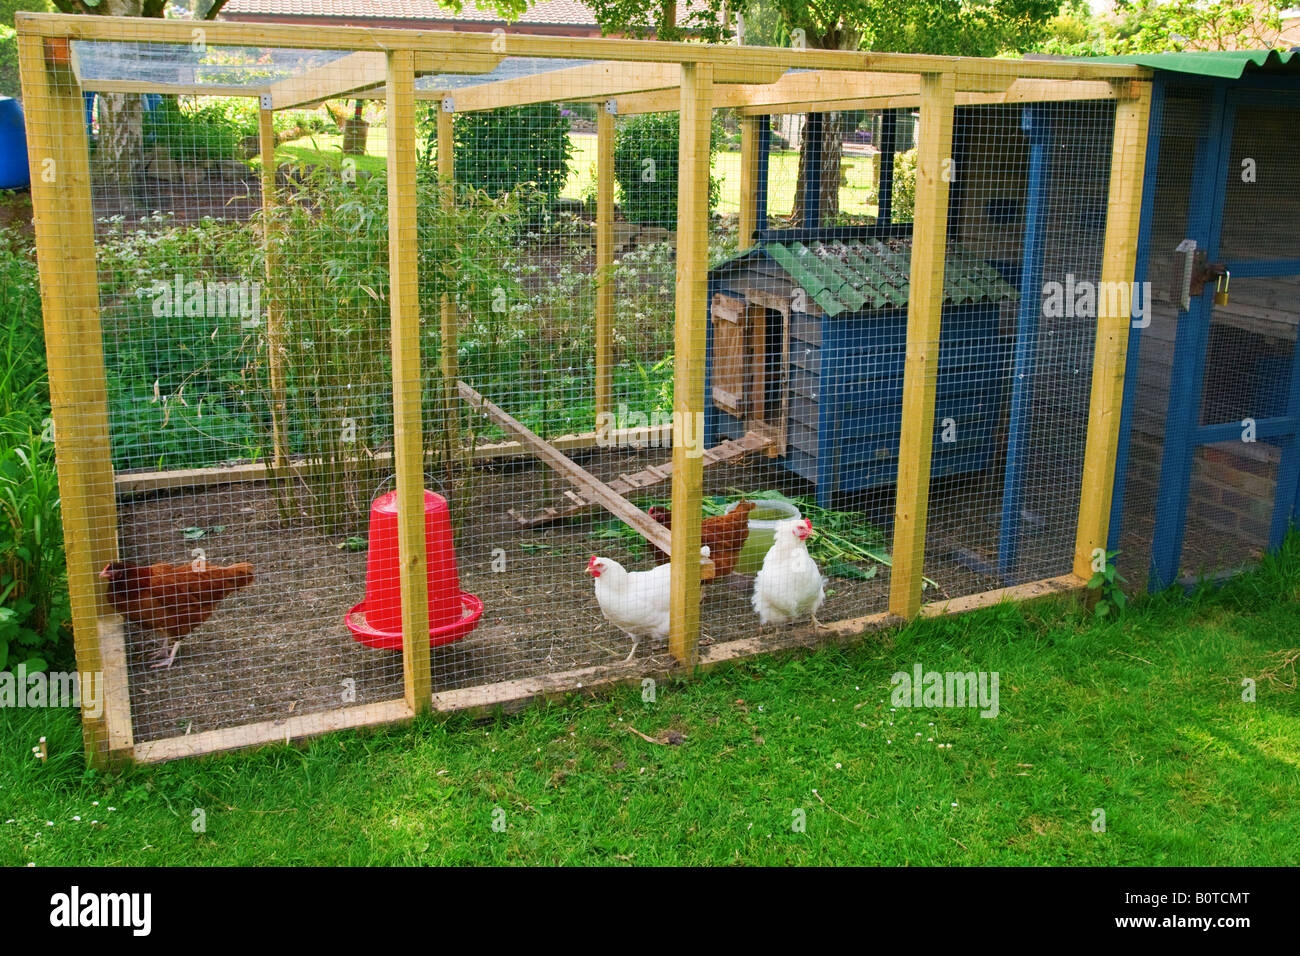 Free range chickens and coup - Stock Image